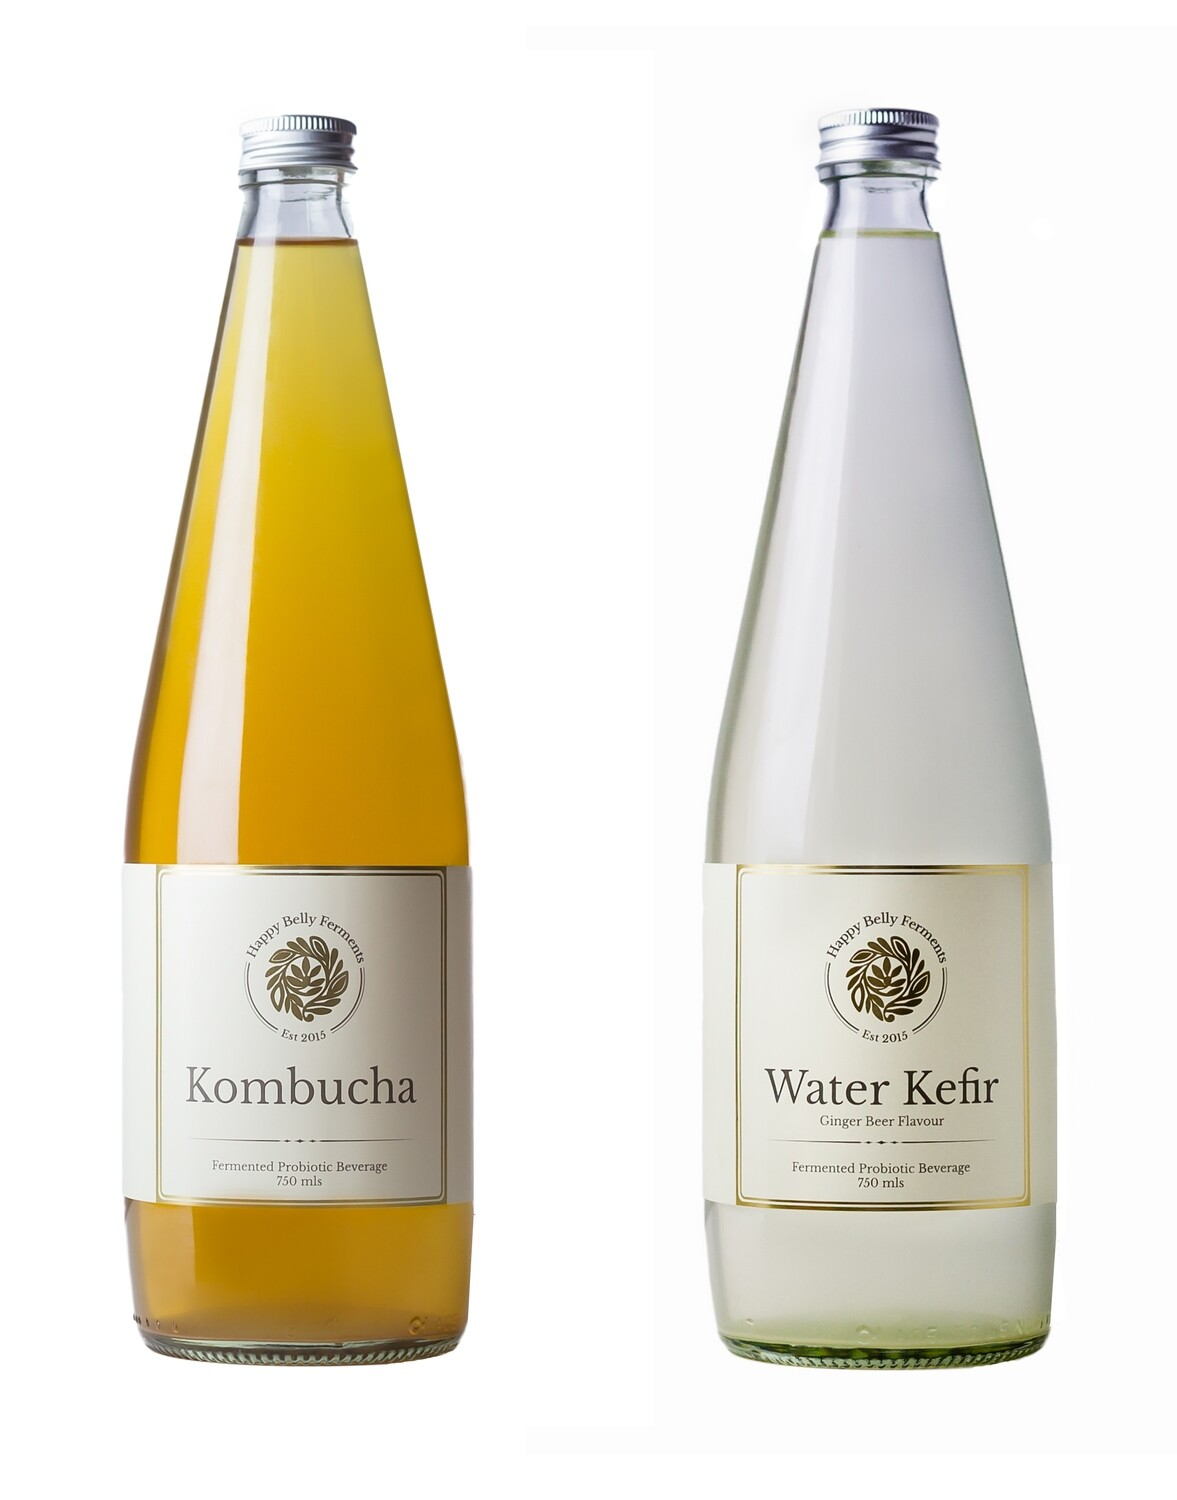 Mixed box of 6 - Kombucha 750ml x 3, Water Kefir 750ml x 3